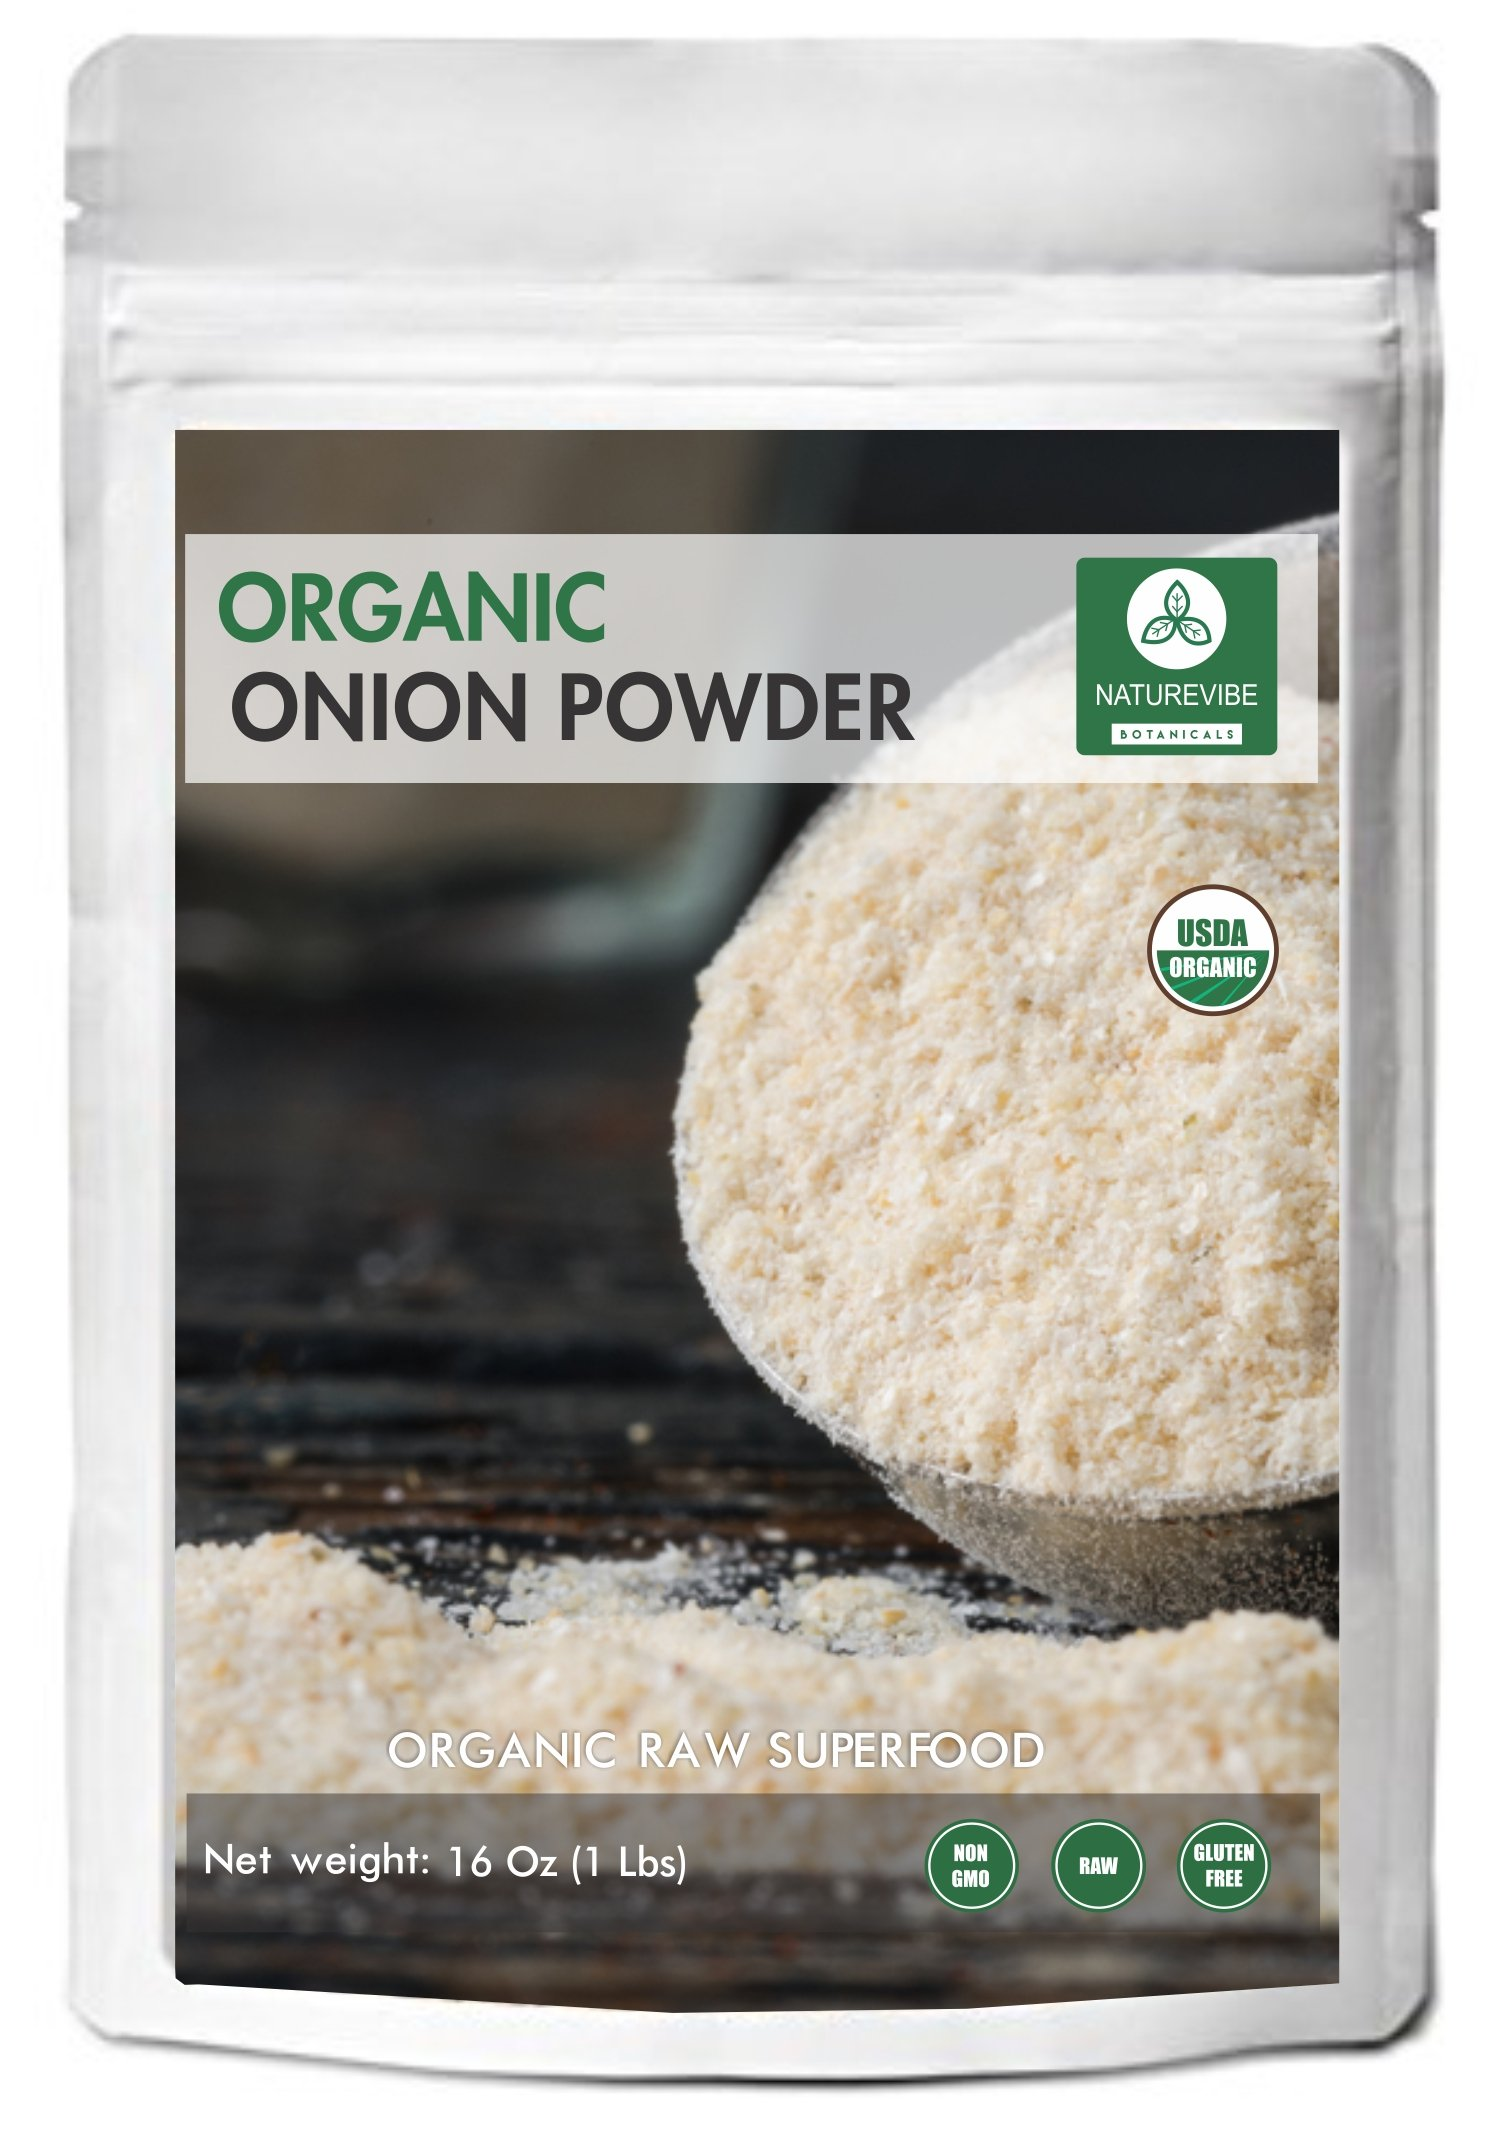 Naturevibe Botanicals - Organic Ground Onion Powder (1 pound) by Naturevibe Botanicals